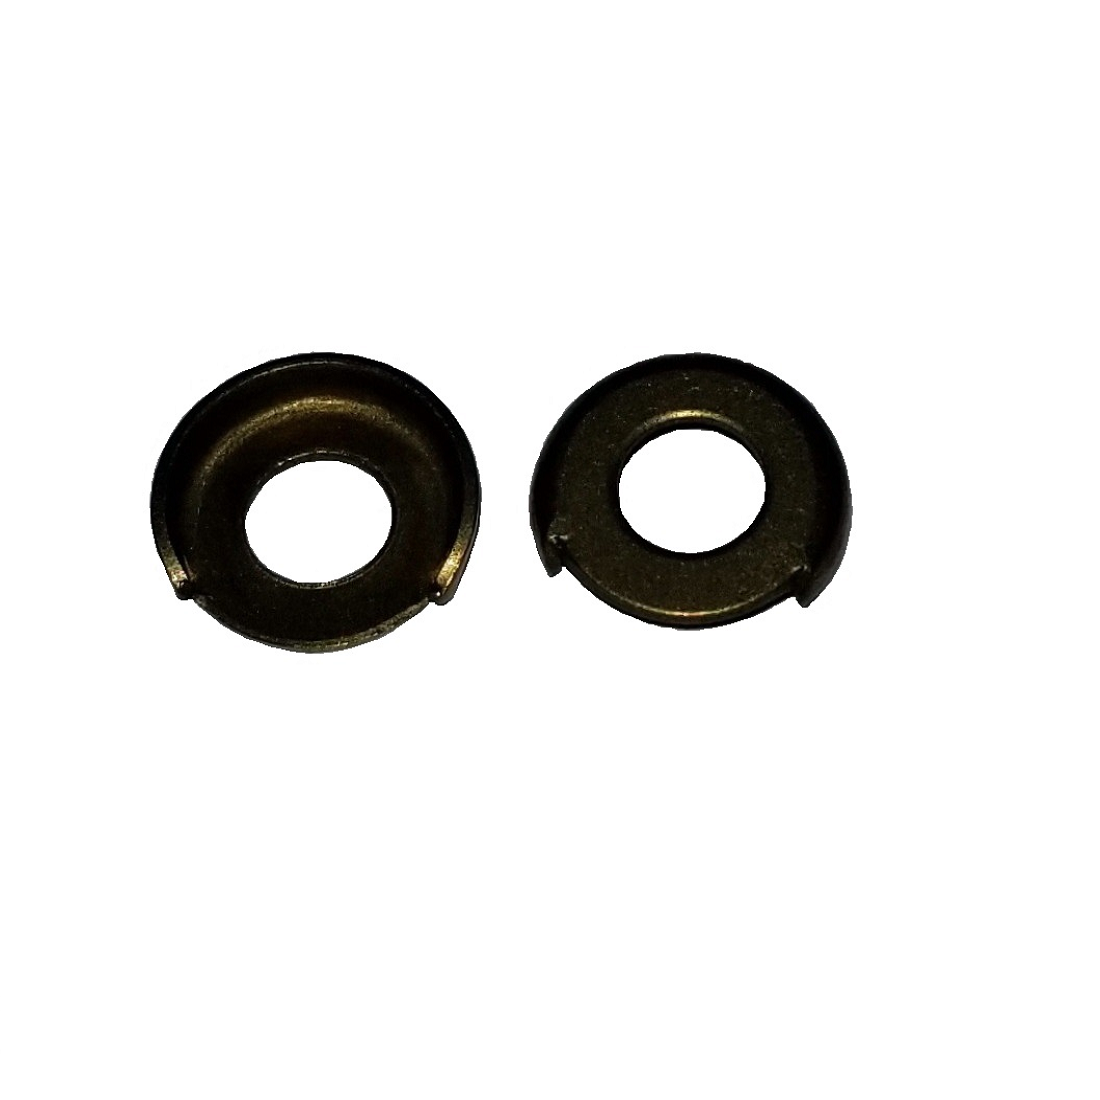 Terminal Cup Washer - 0.203 ID, 0.562 OD, 0.020 Thick, Copper, Nickel